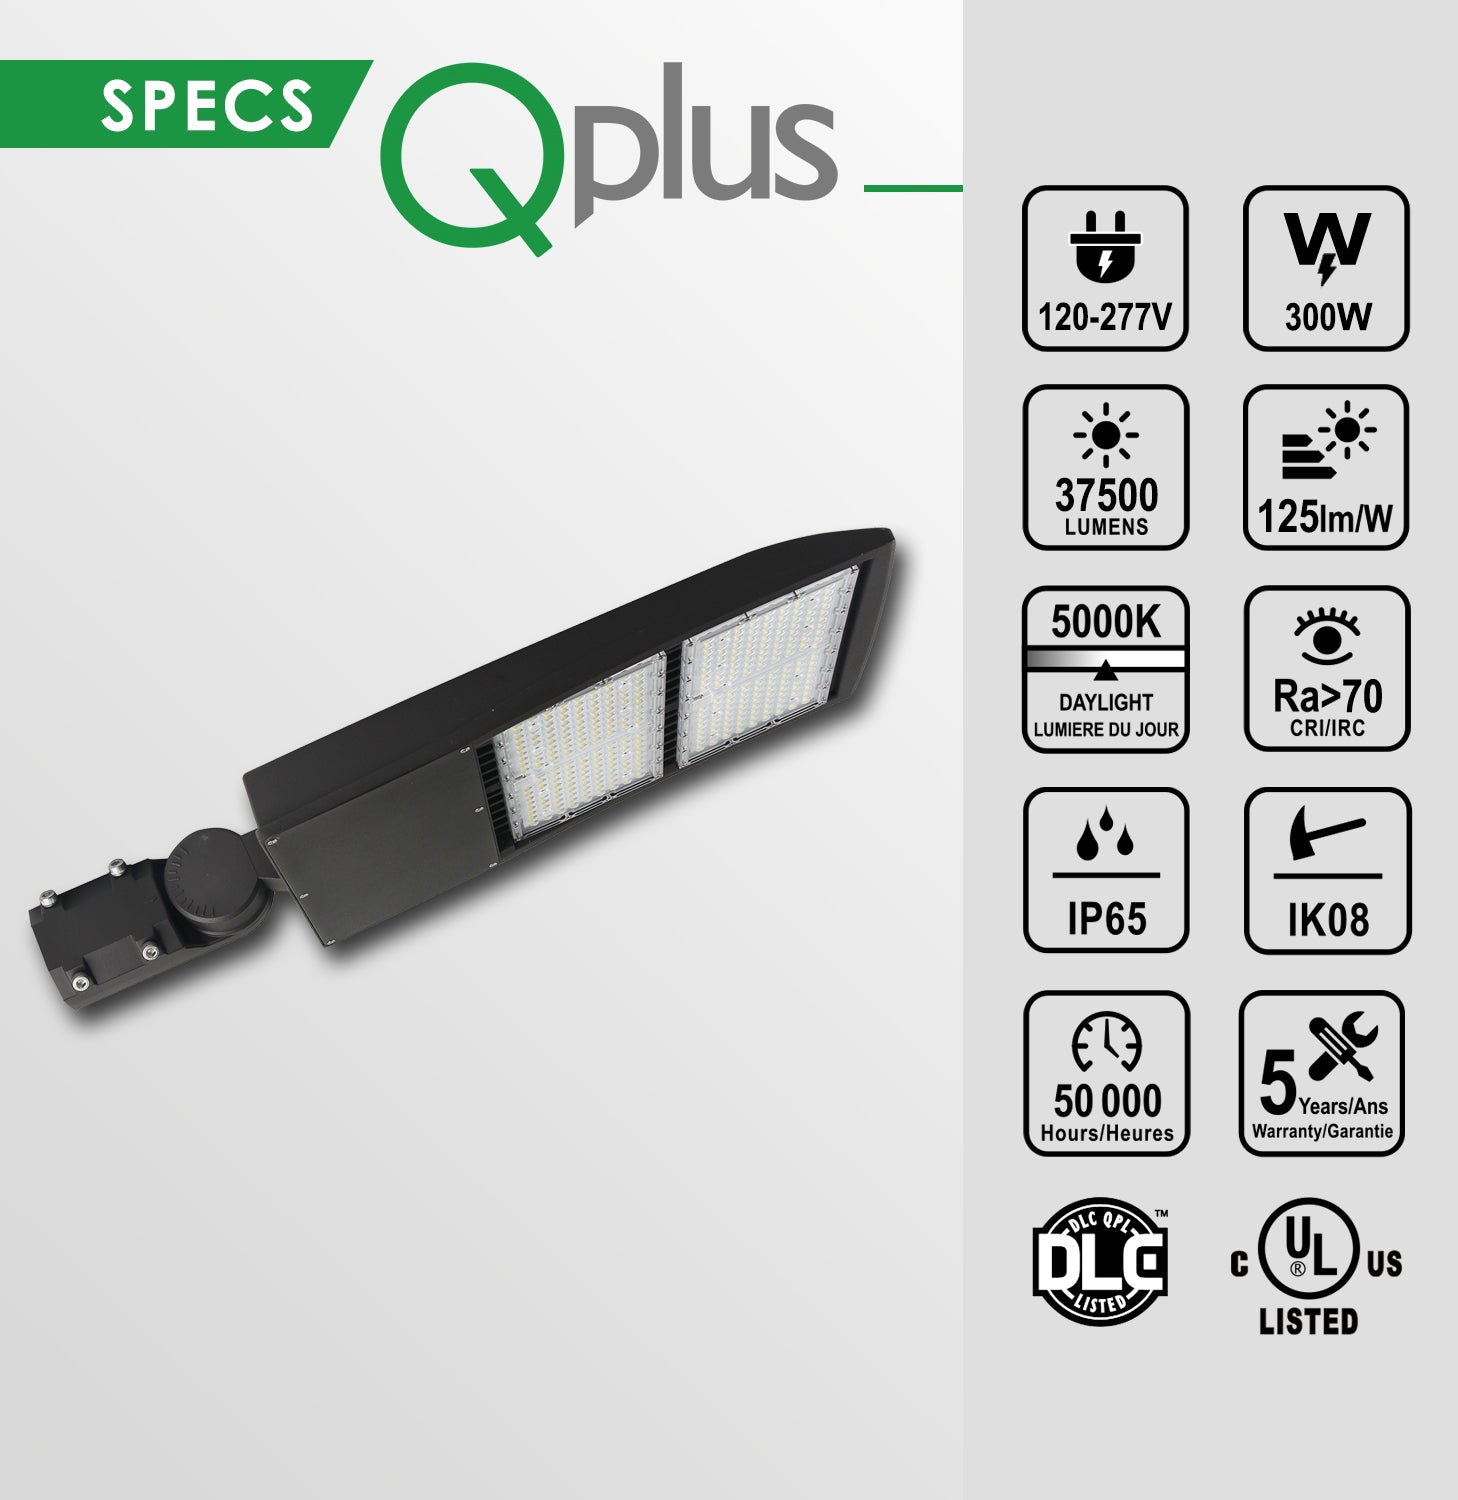 QPlus LED Parking Lot Shoebox Light Pole Fixture Daylight White 5000K in 240W & 300W